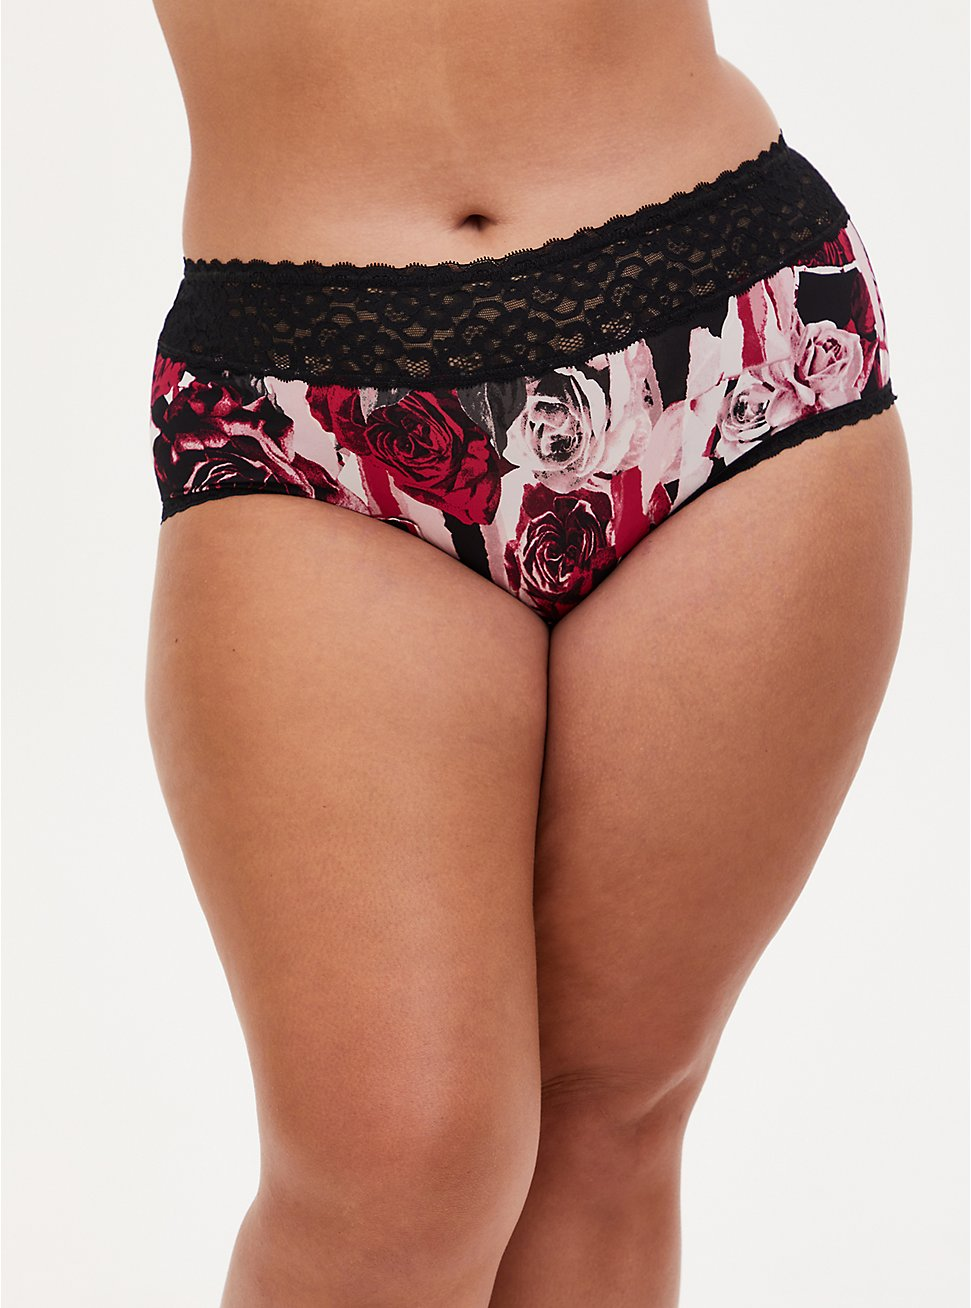 Black & Red Rose Second Skin Cheeky Panty , TORN ROSE FLORAL BLACK, hi-res